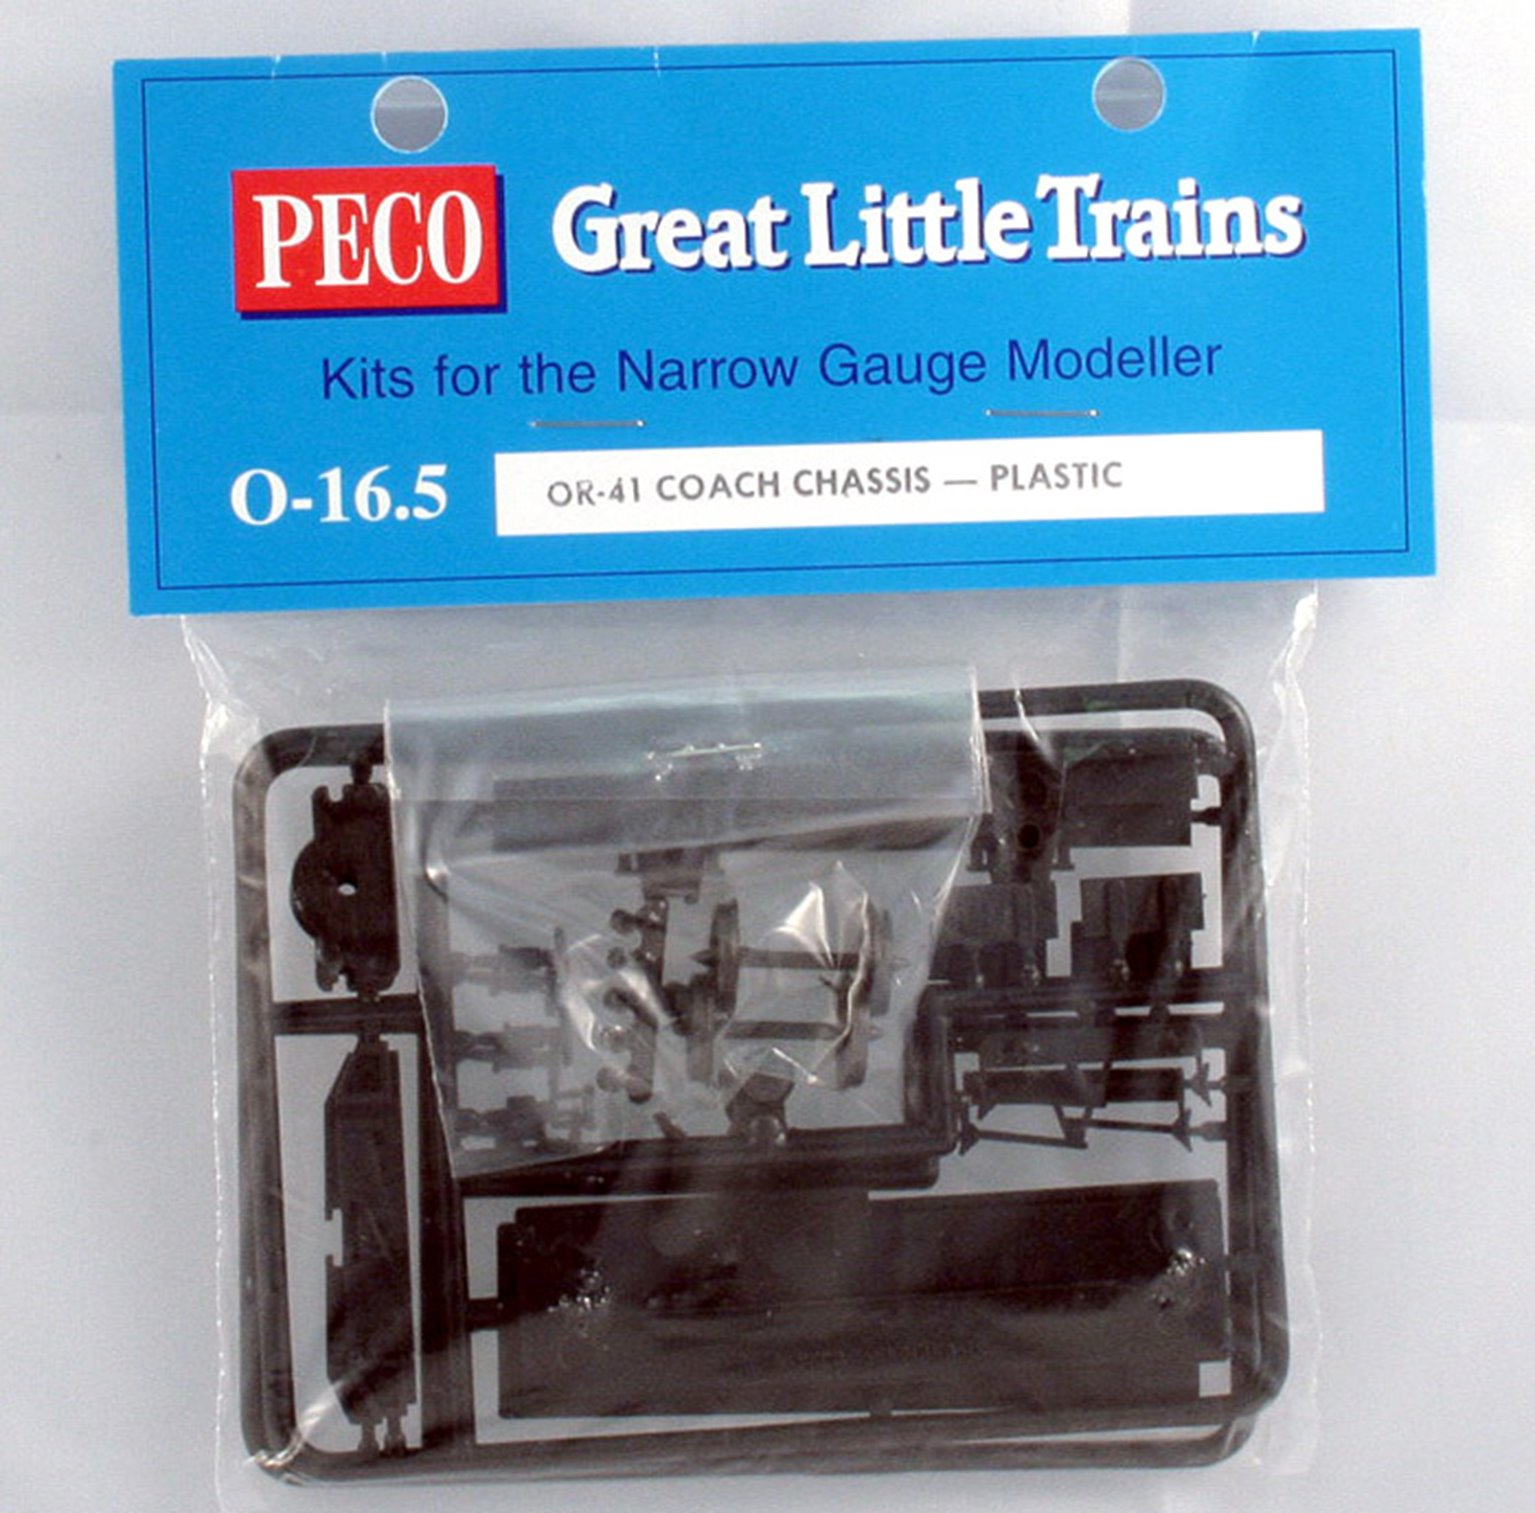 O-16.5 Scale Plastic Coach Chassis